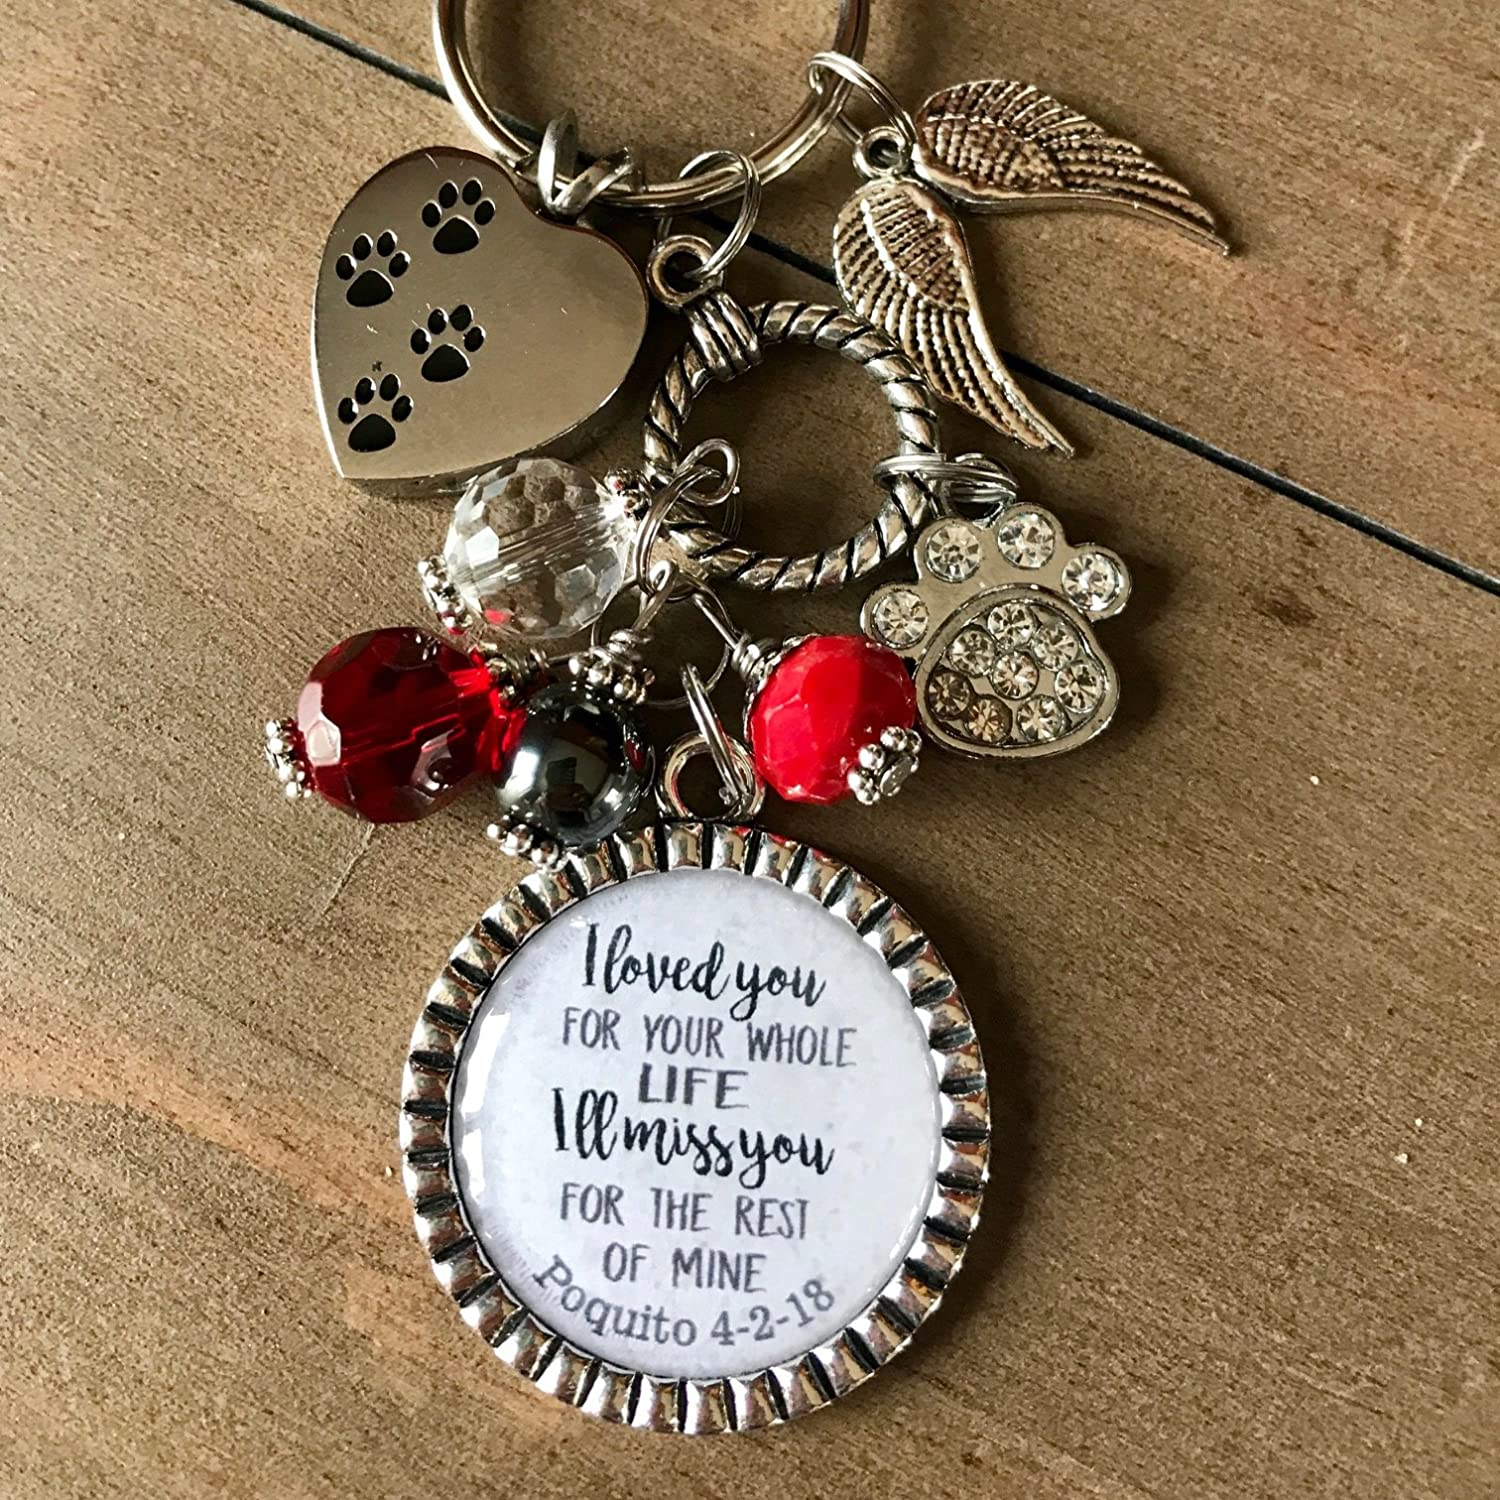 Personalised Gift for Her Him Engraved Present for Women Men car mirror charm